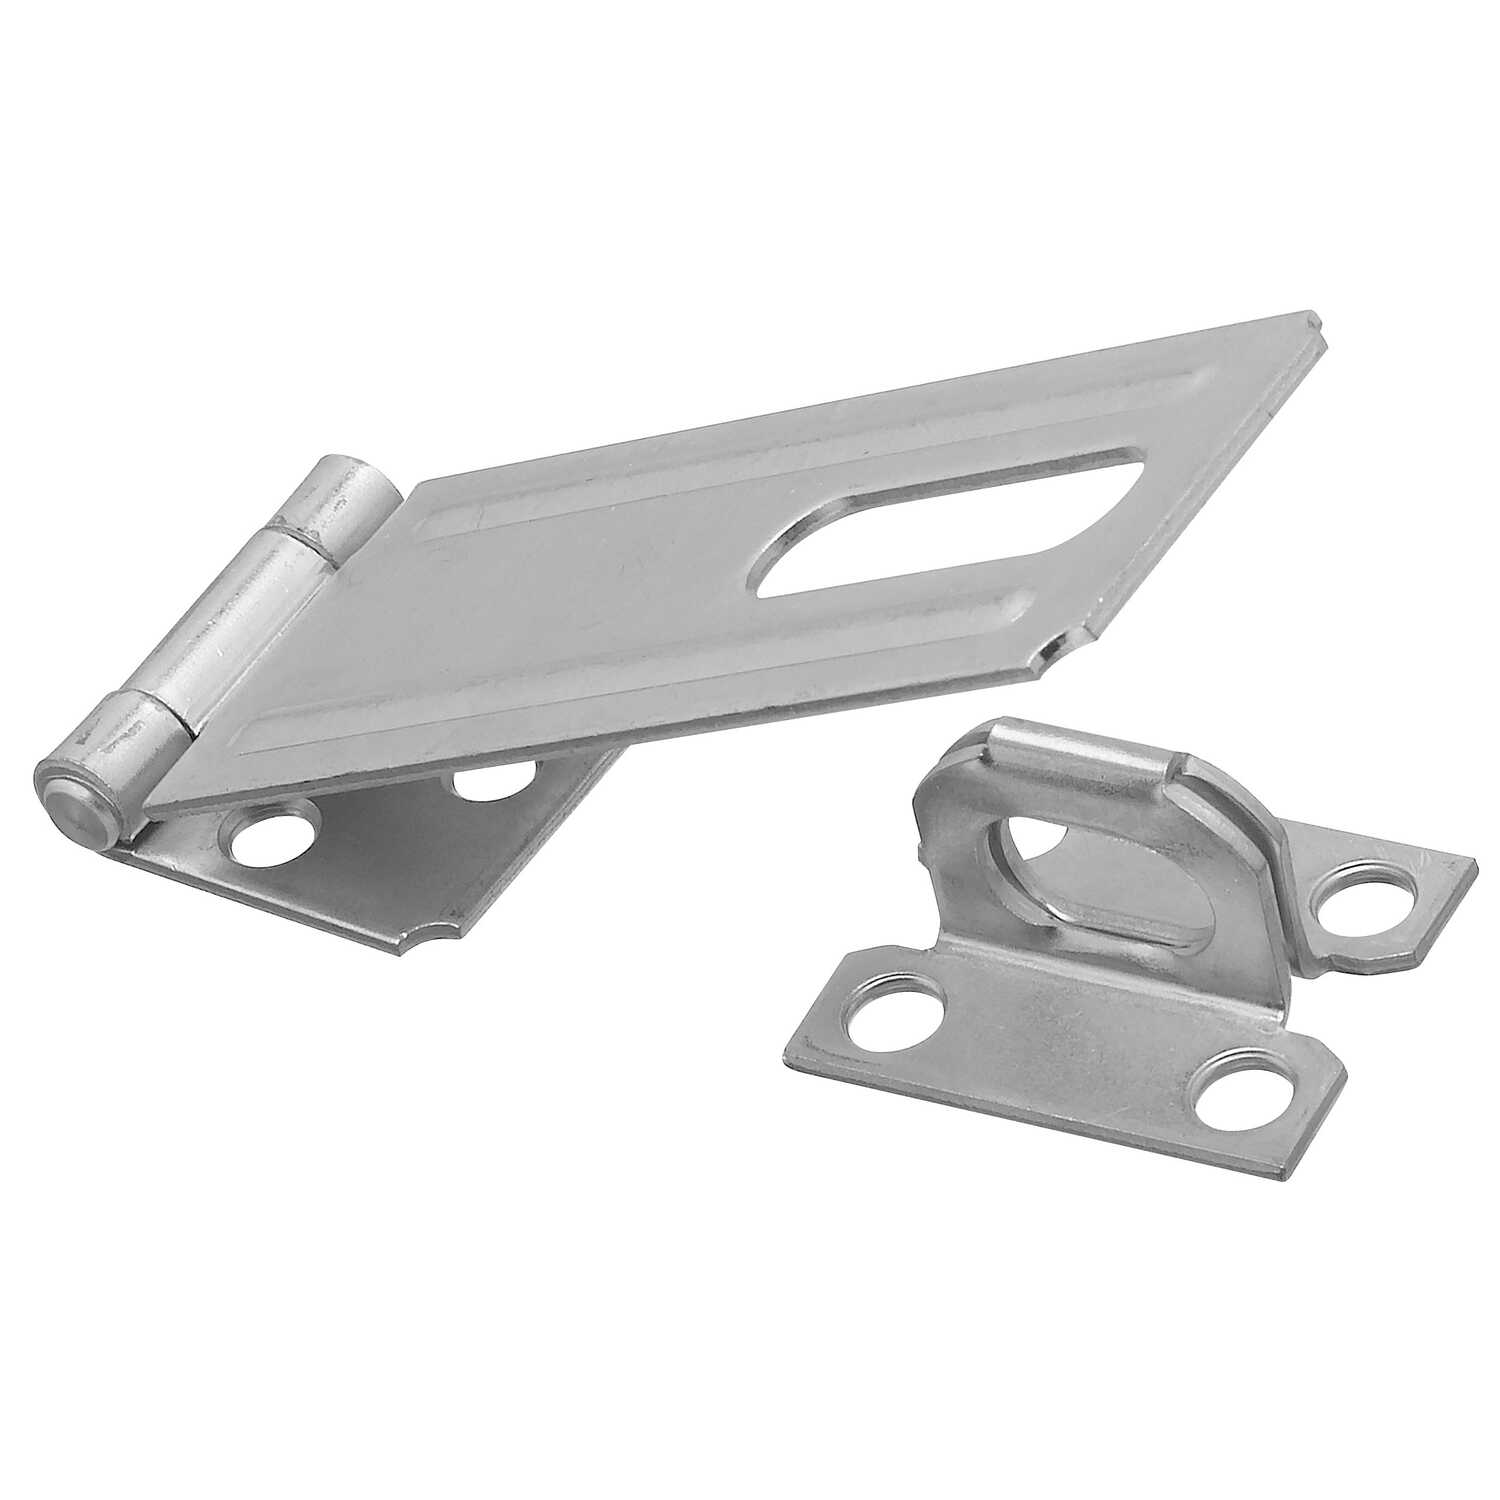 National Hardware  Zinc-Plated  Steel  4-1/2 in. L Safety Hasp  1